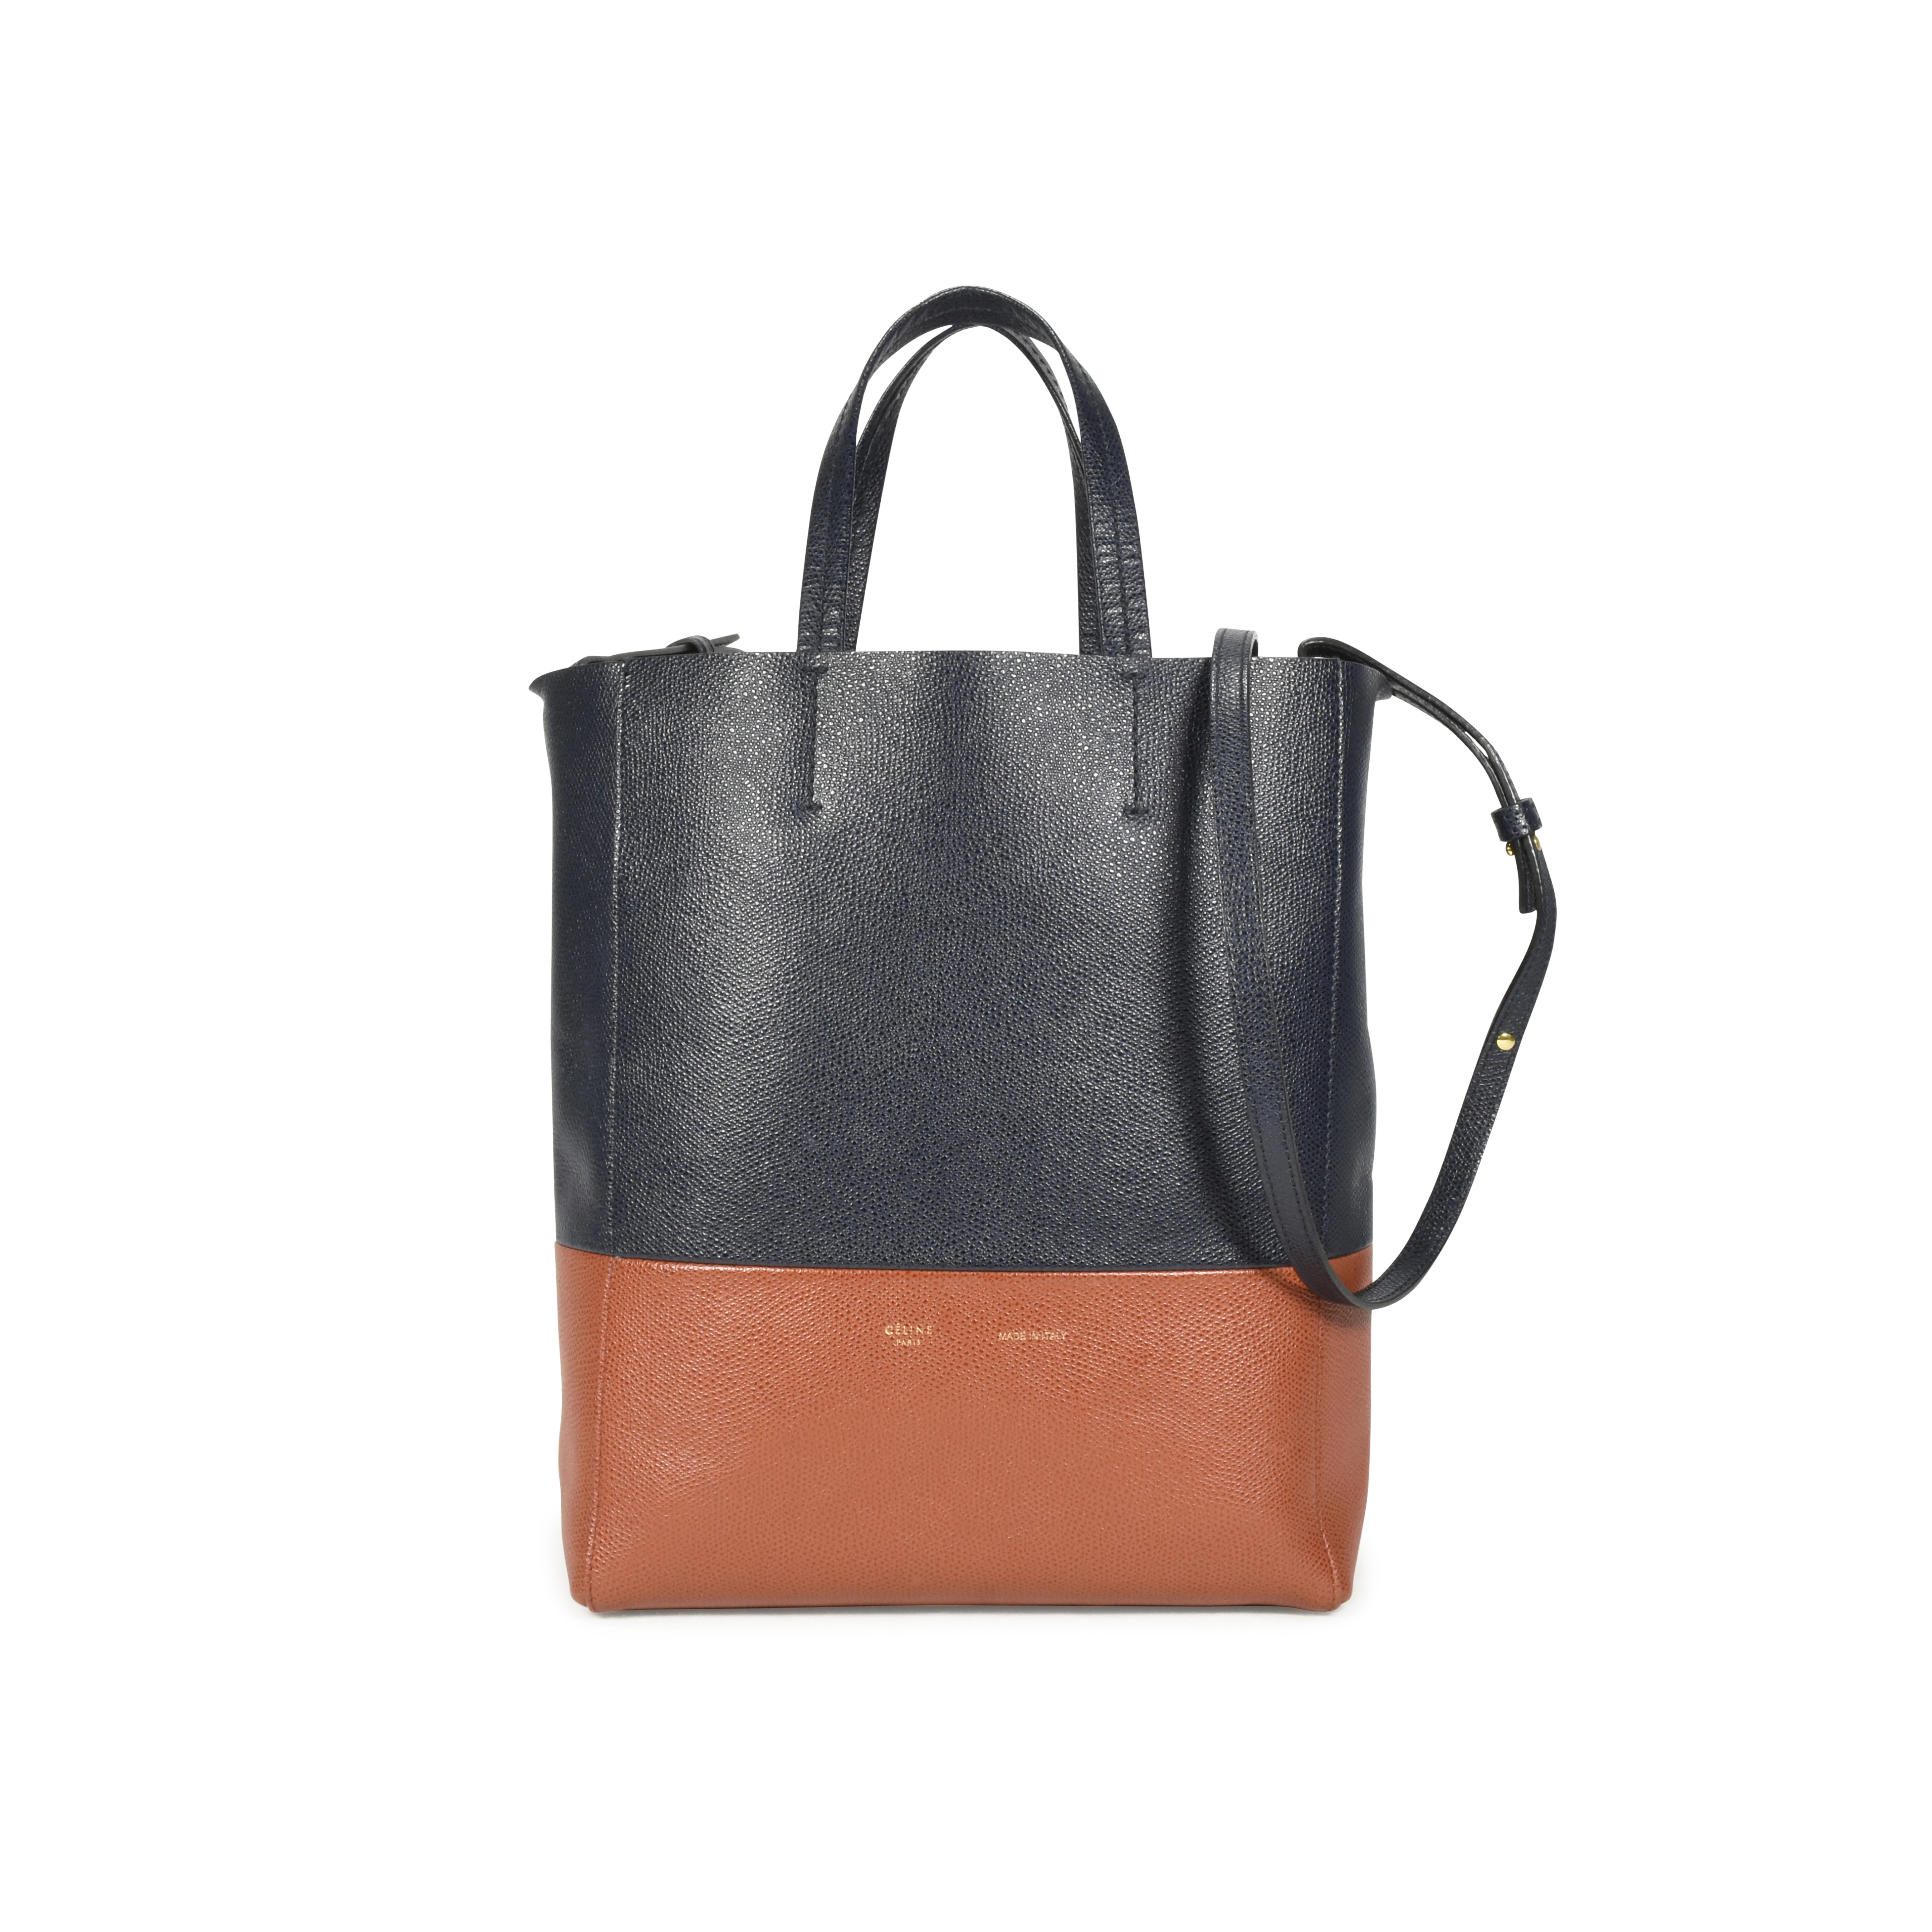 Authentic Second Hand Céline Small Vertical Cabas Tote Bag (PSS-139-00029)   34fb7f120119d